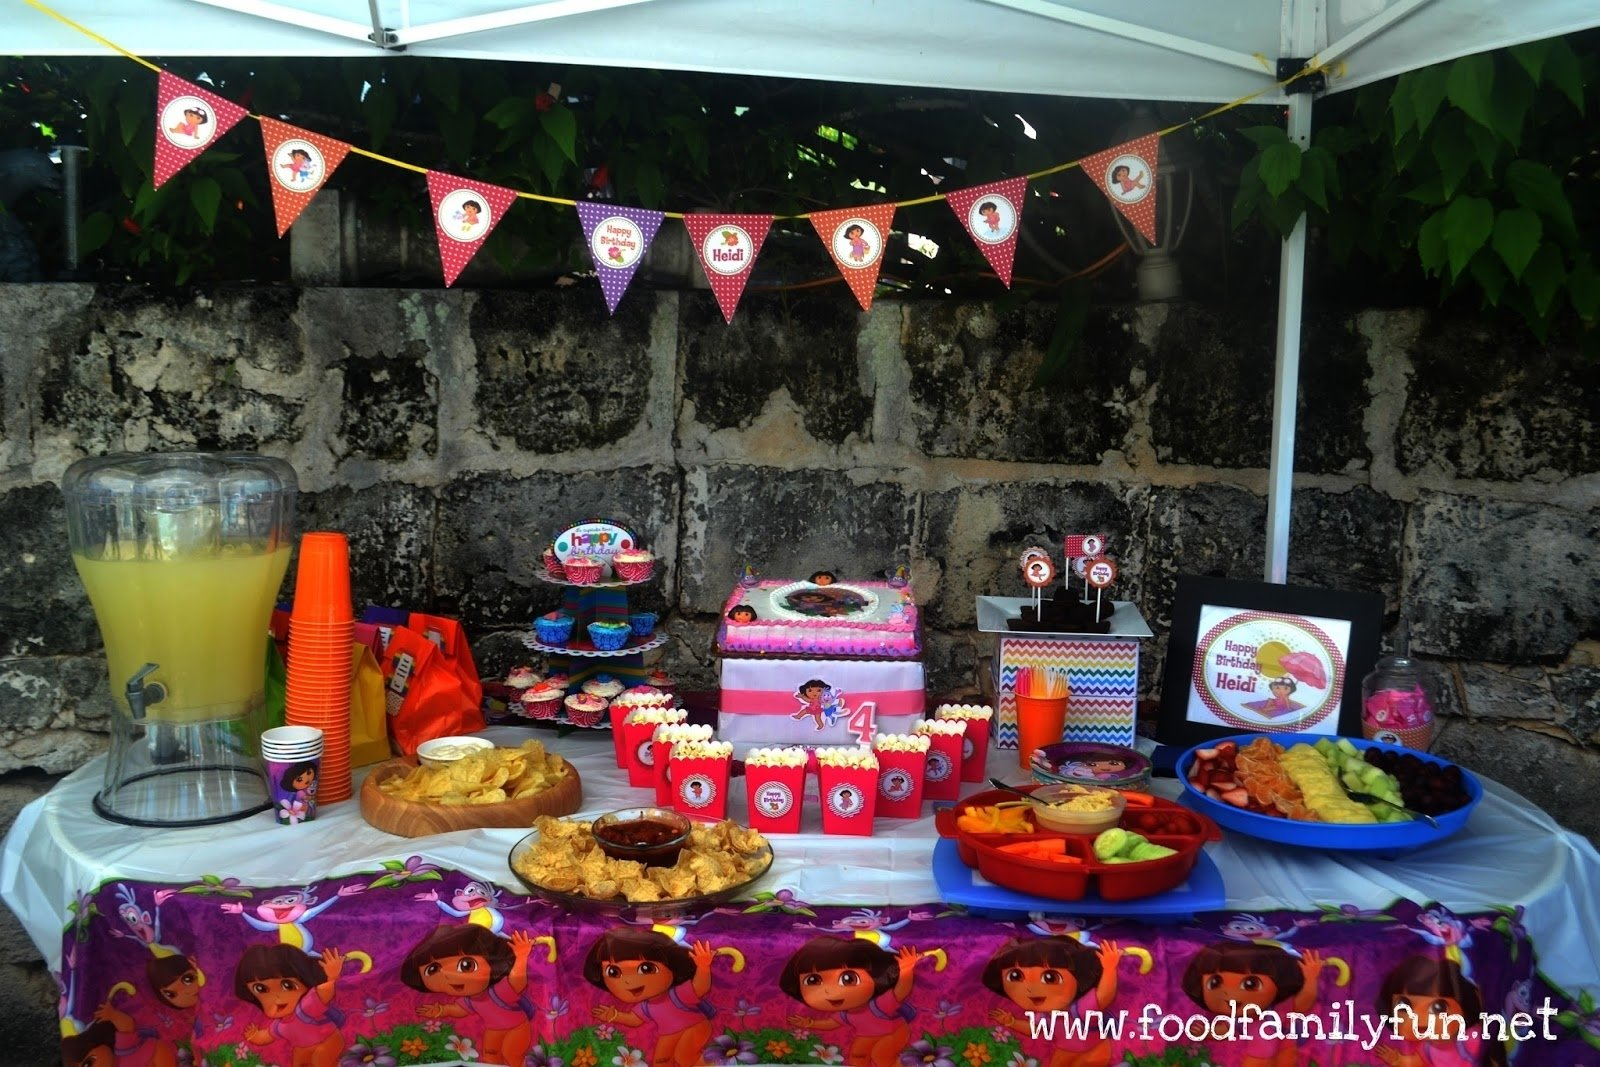 10 Stunning Inexpensive Birthday Party Ideas For Adults food family fun dora the explorer birthday party on a budget 2